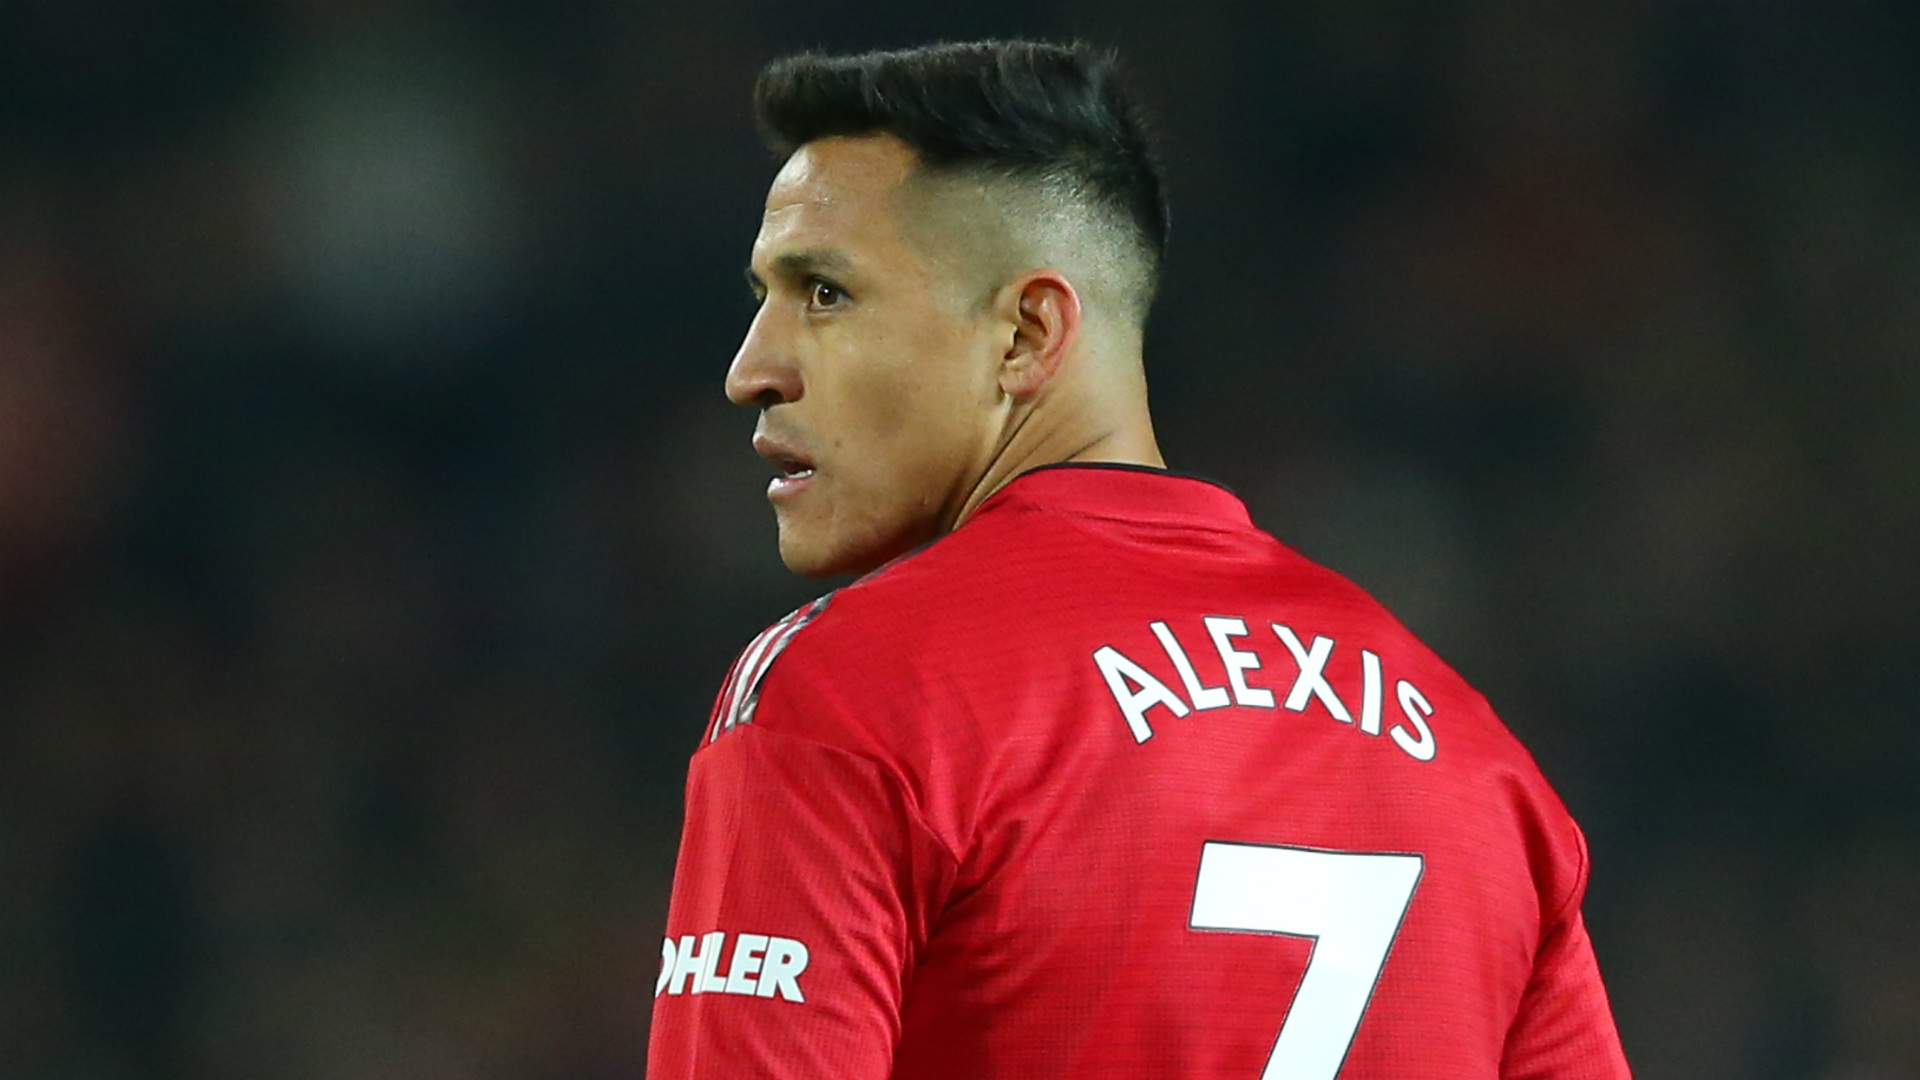 'Alexis Sanchez will be wishing he'd gone to Man City' – United switch always a 'mistake', says Ince